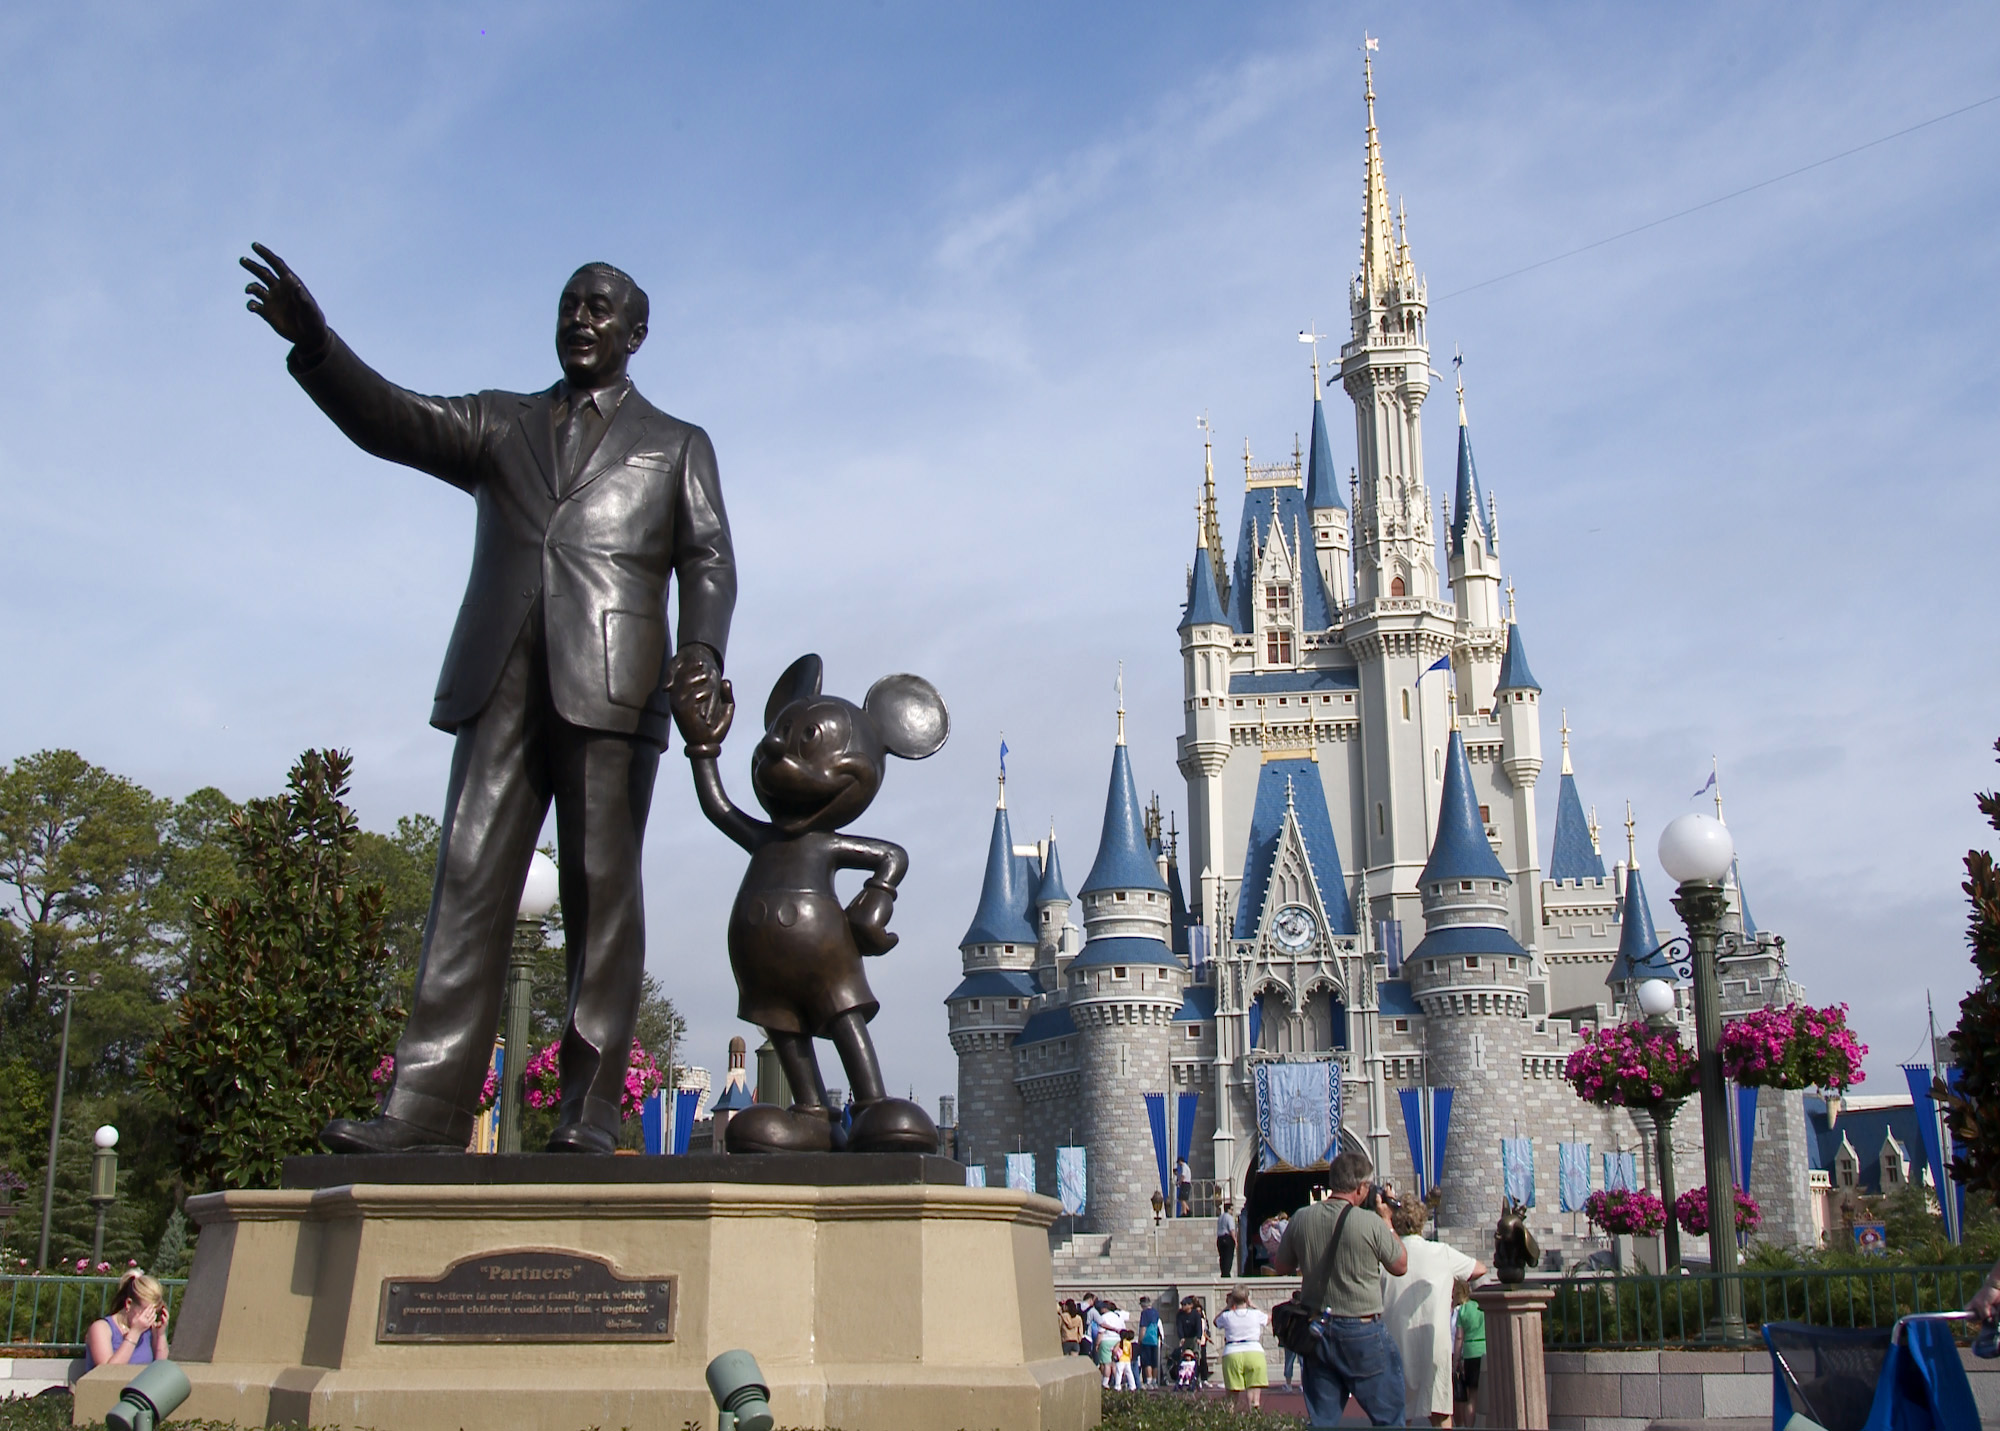 A statue of Walt Disney and Mickey Mouse stands in front of